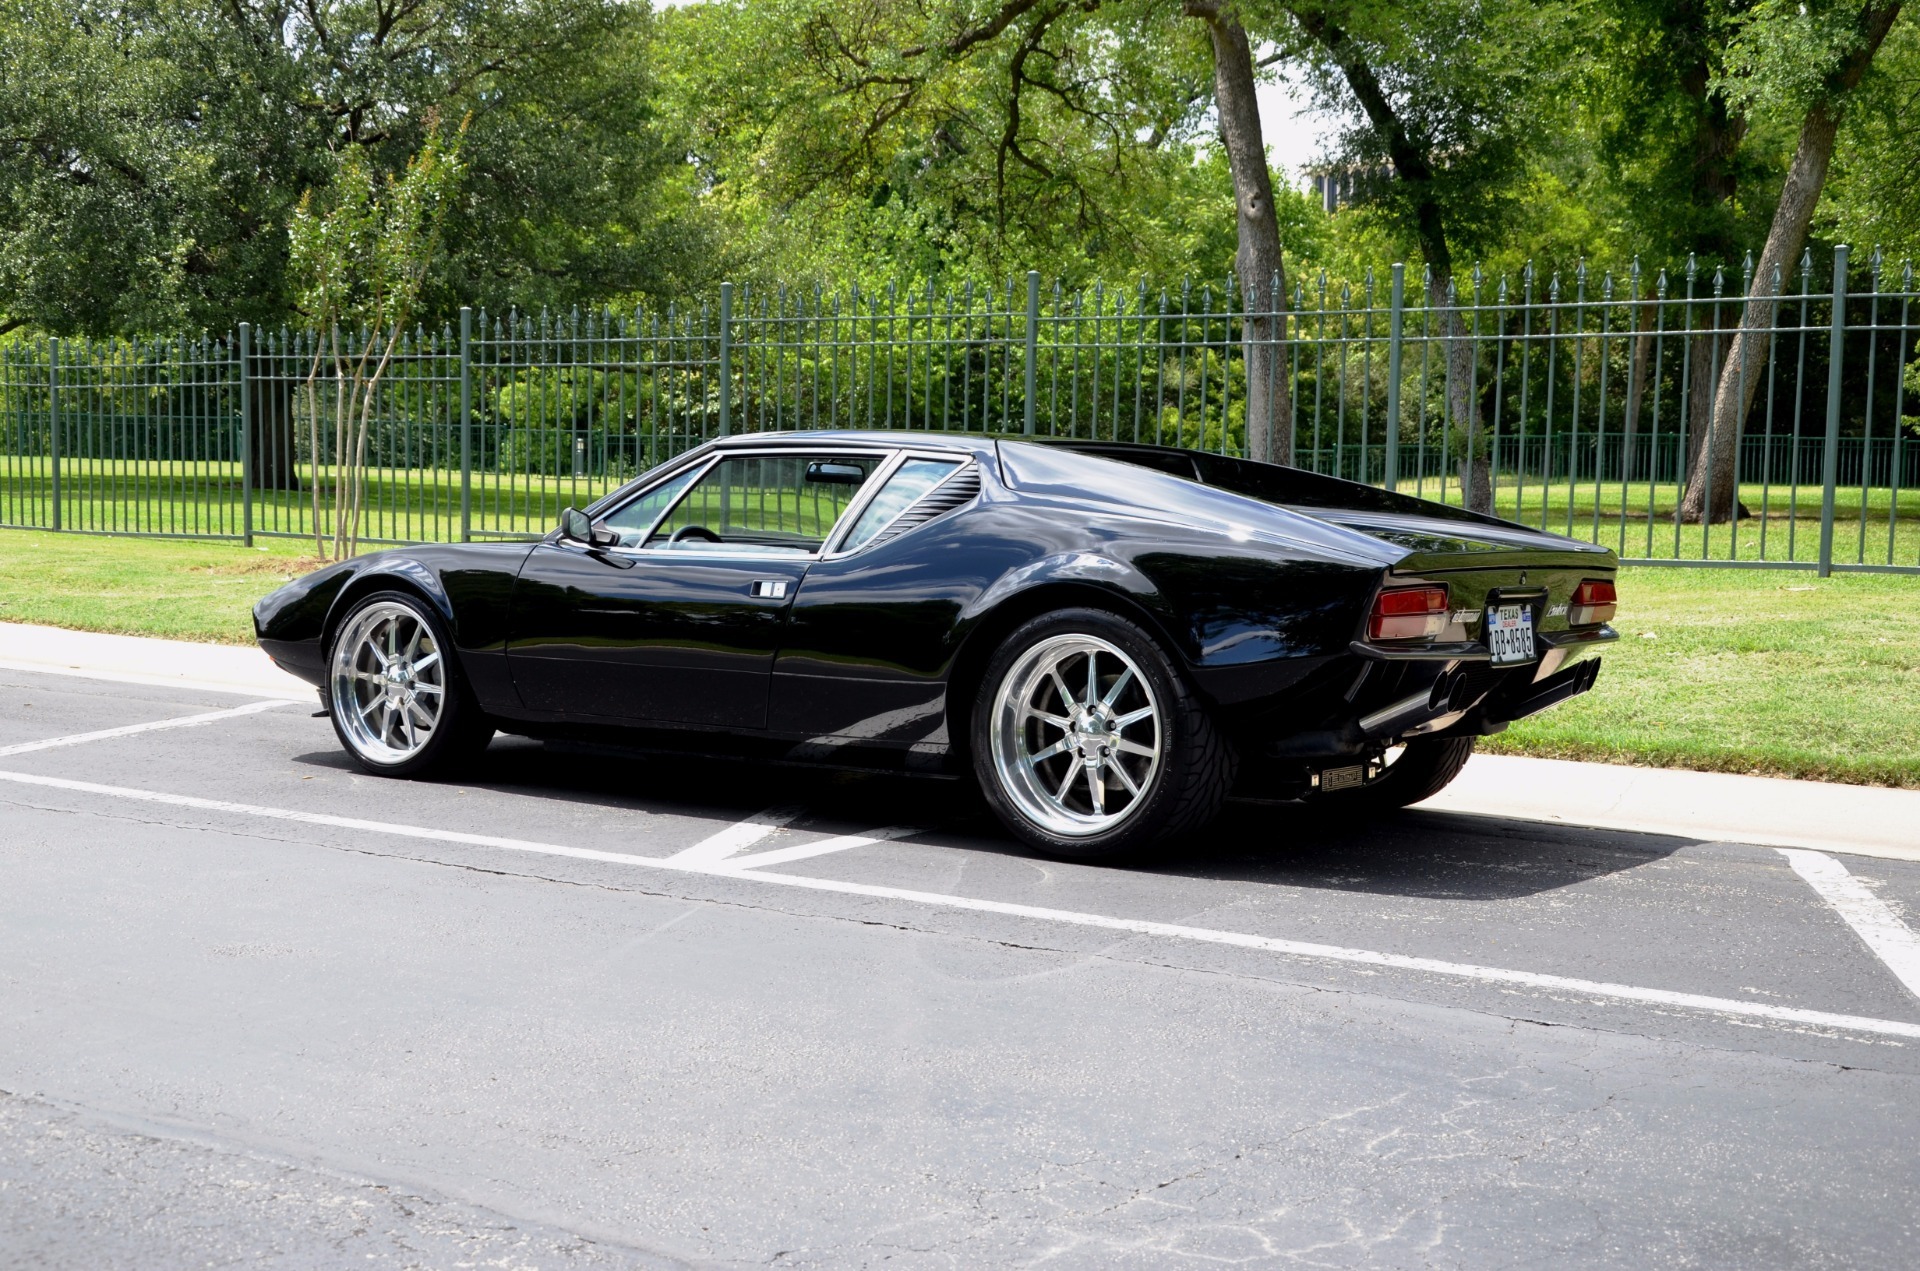 Ford Pantera For Sale >> 1972 FORD PANTERA DE TOMASO Stock # 72PAN for sale near Dallas, TX | TX FORD Dealer